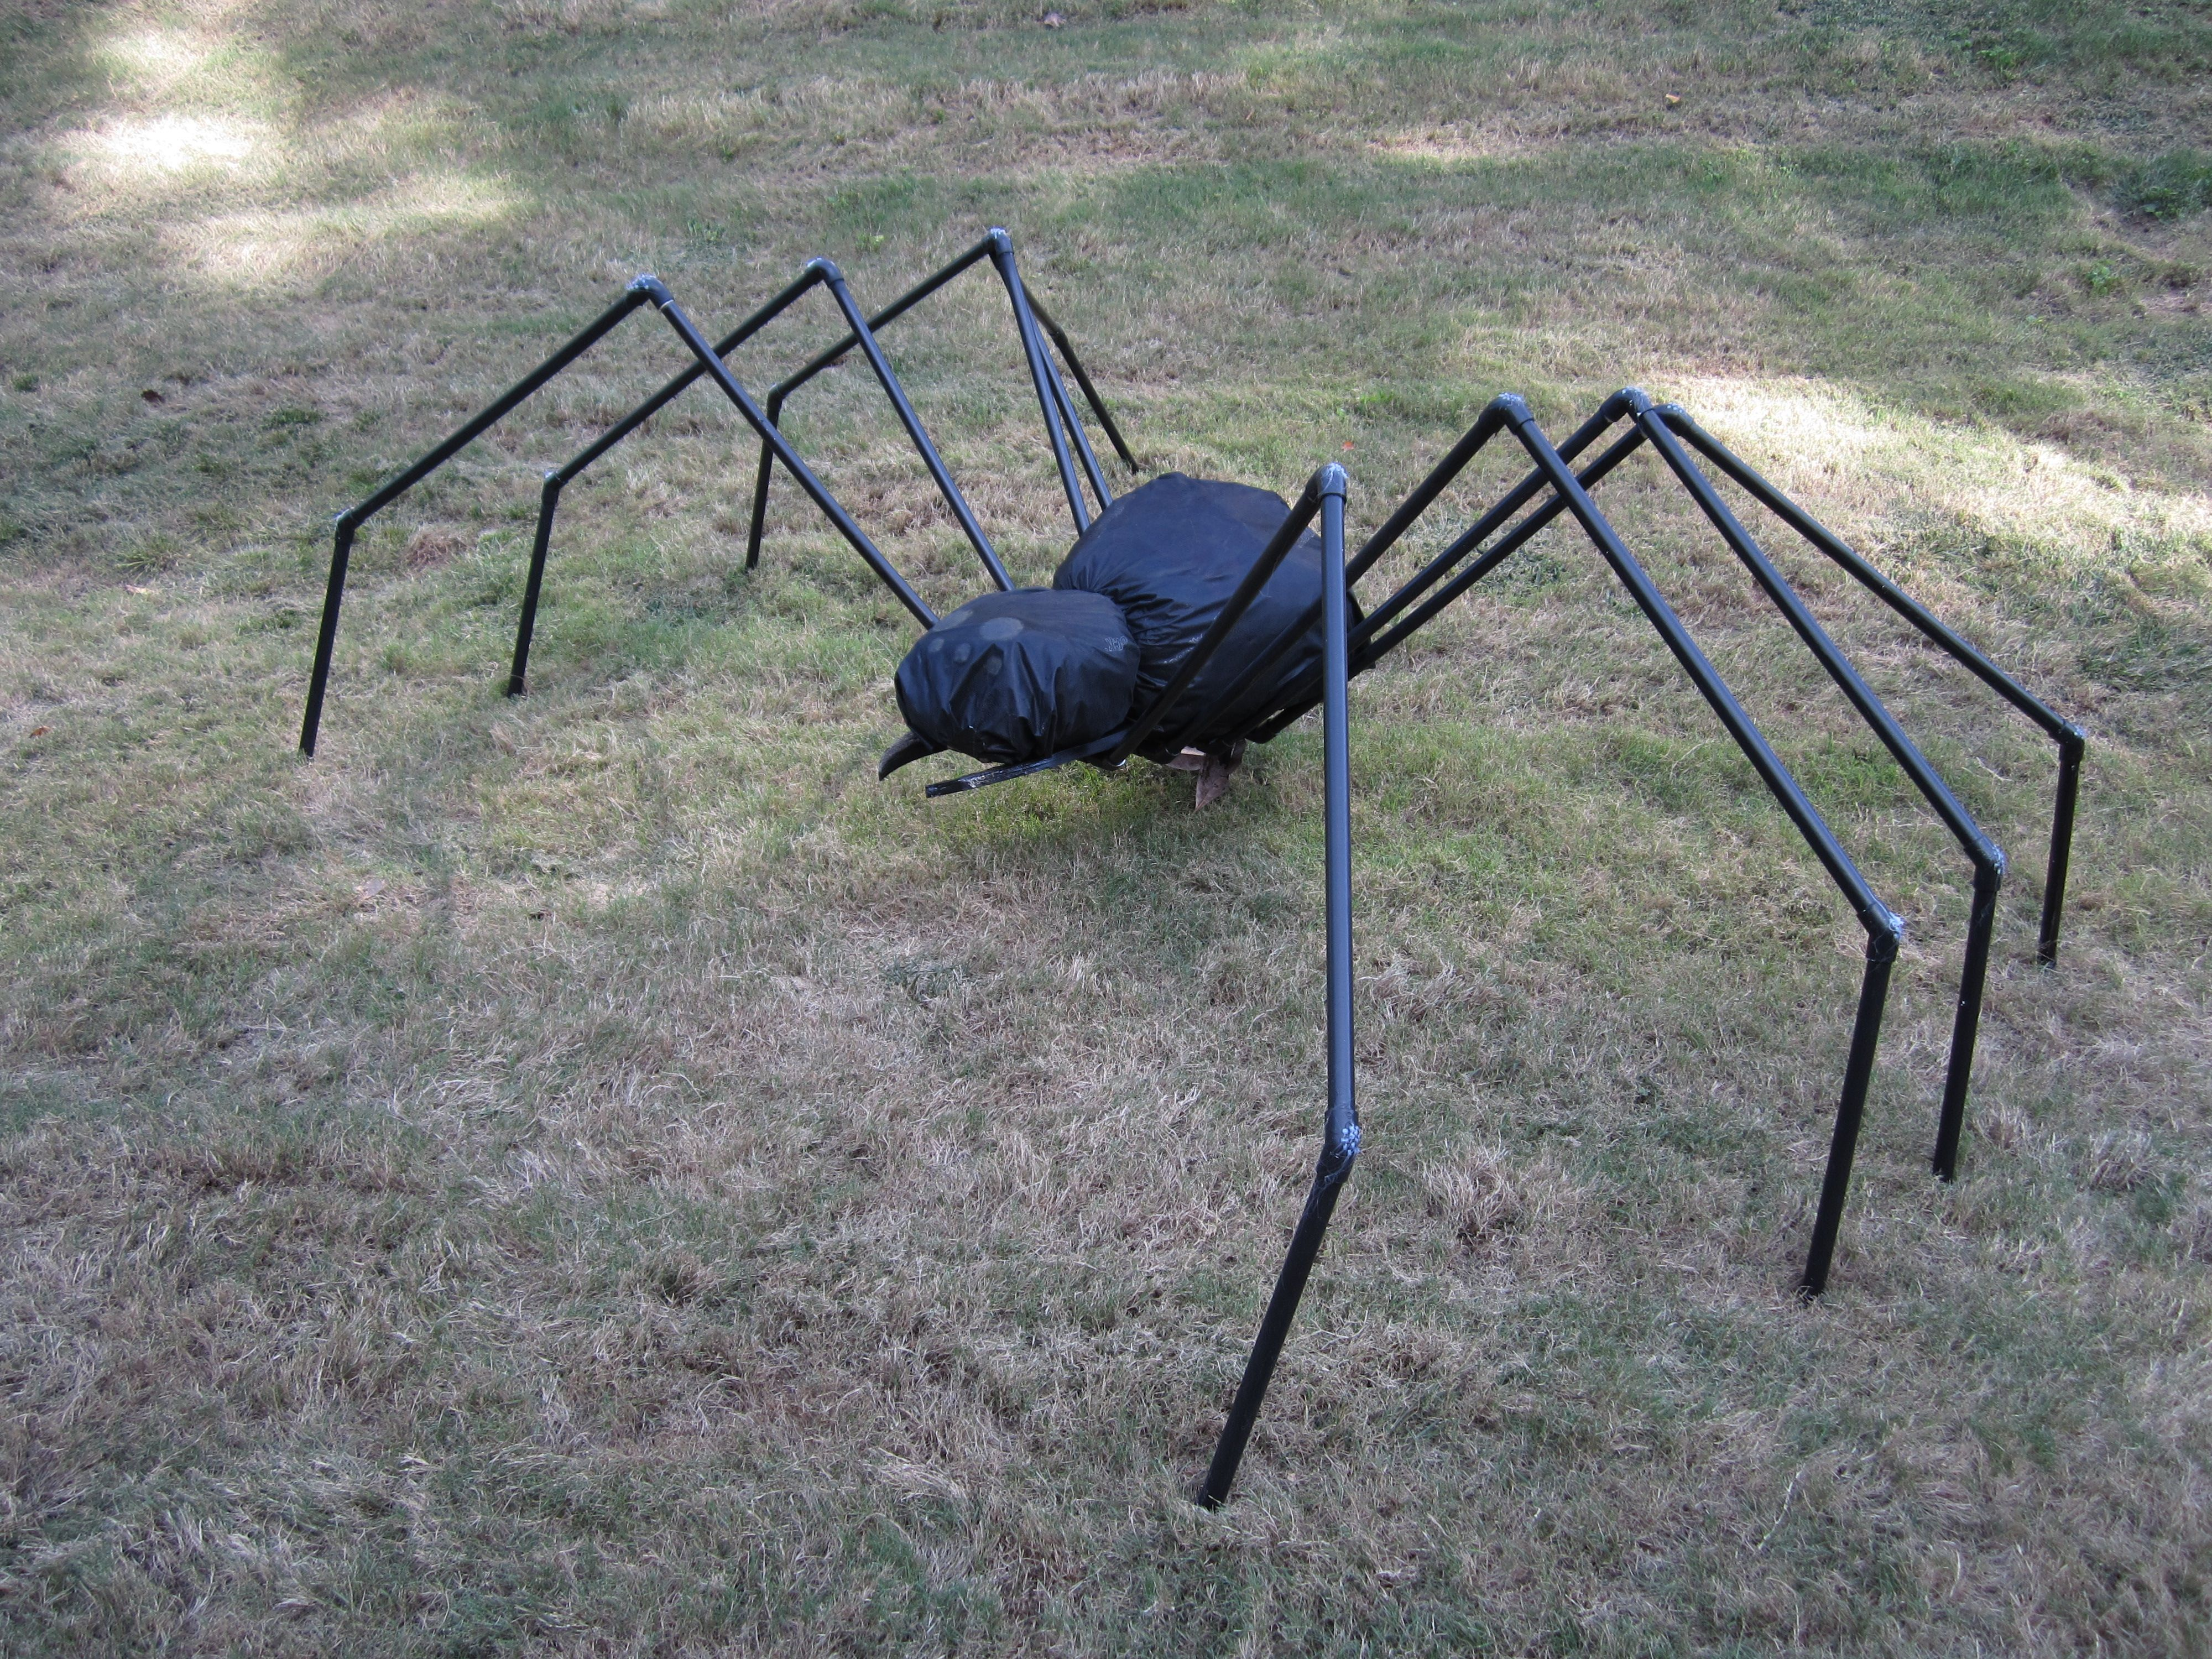 A spooky spider Halloween yard decoration made of PVC pipe & Halloween - PVC Yard Spider - Got Questions? Get Answers! Home Depot ...